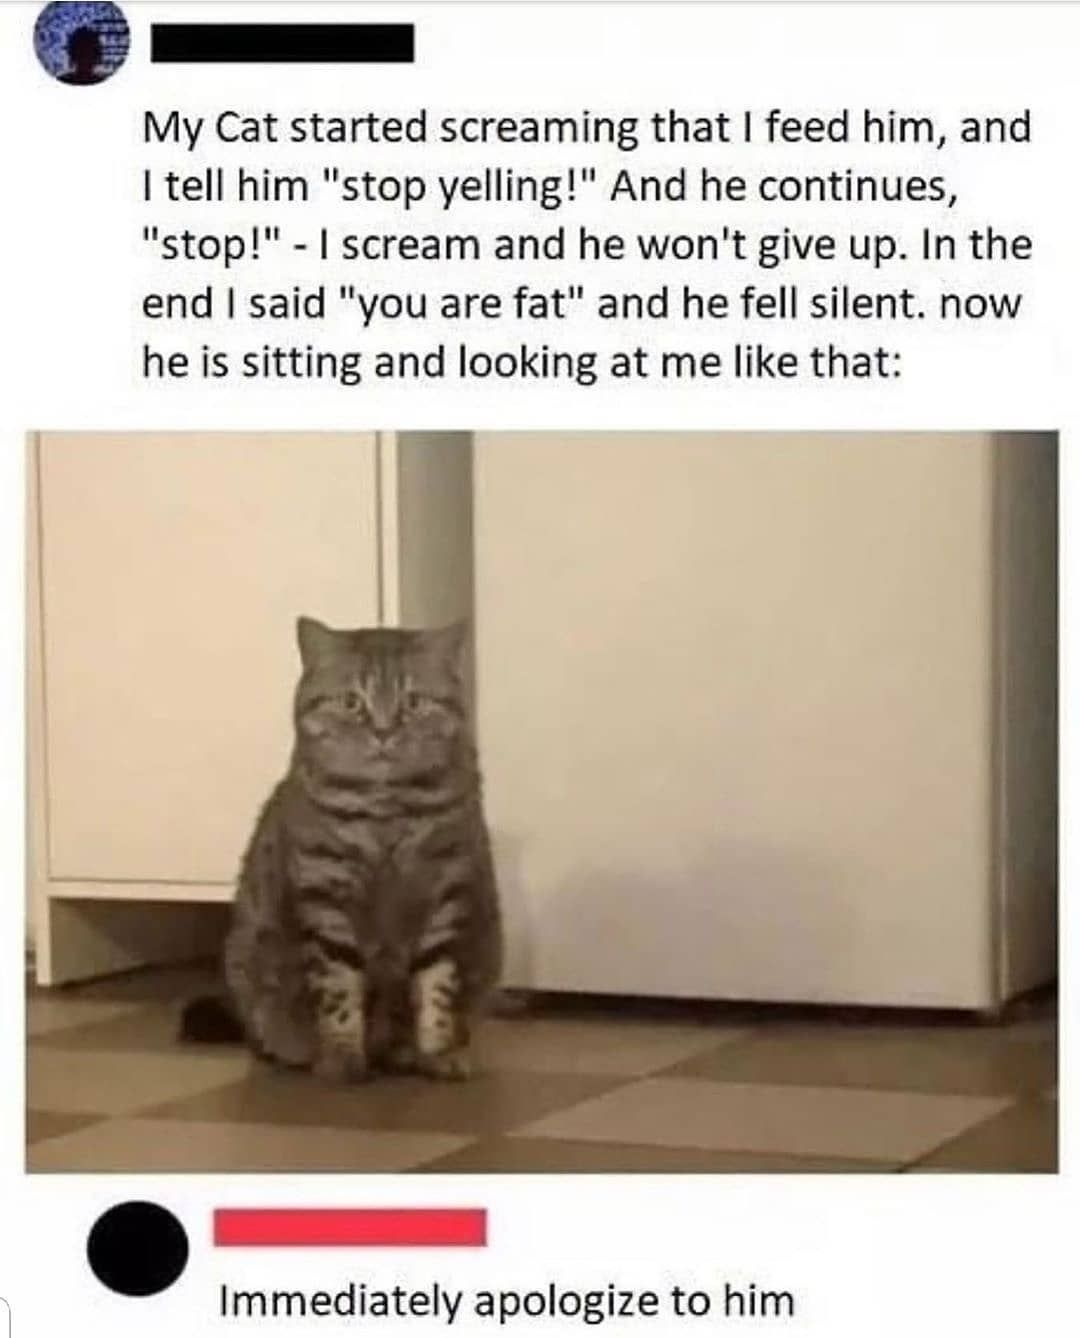 Pin By Good Vibez On Memes In 2020 Funny Animal Memes Funny Cat